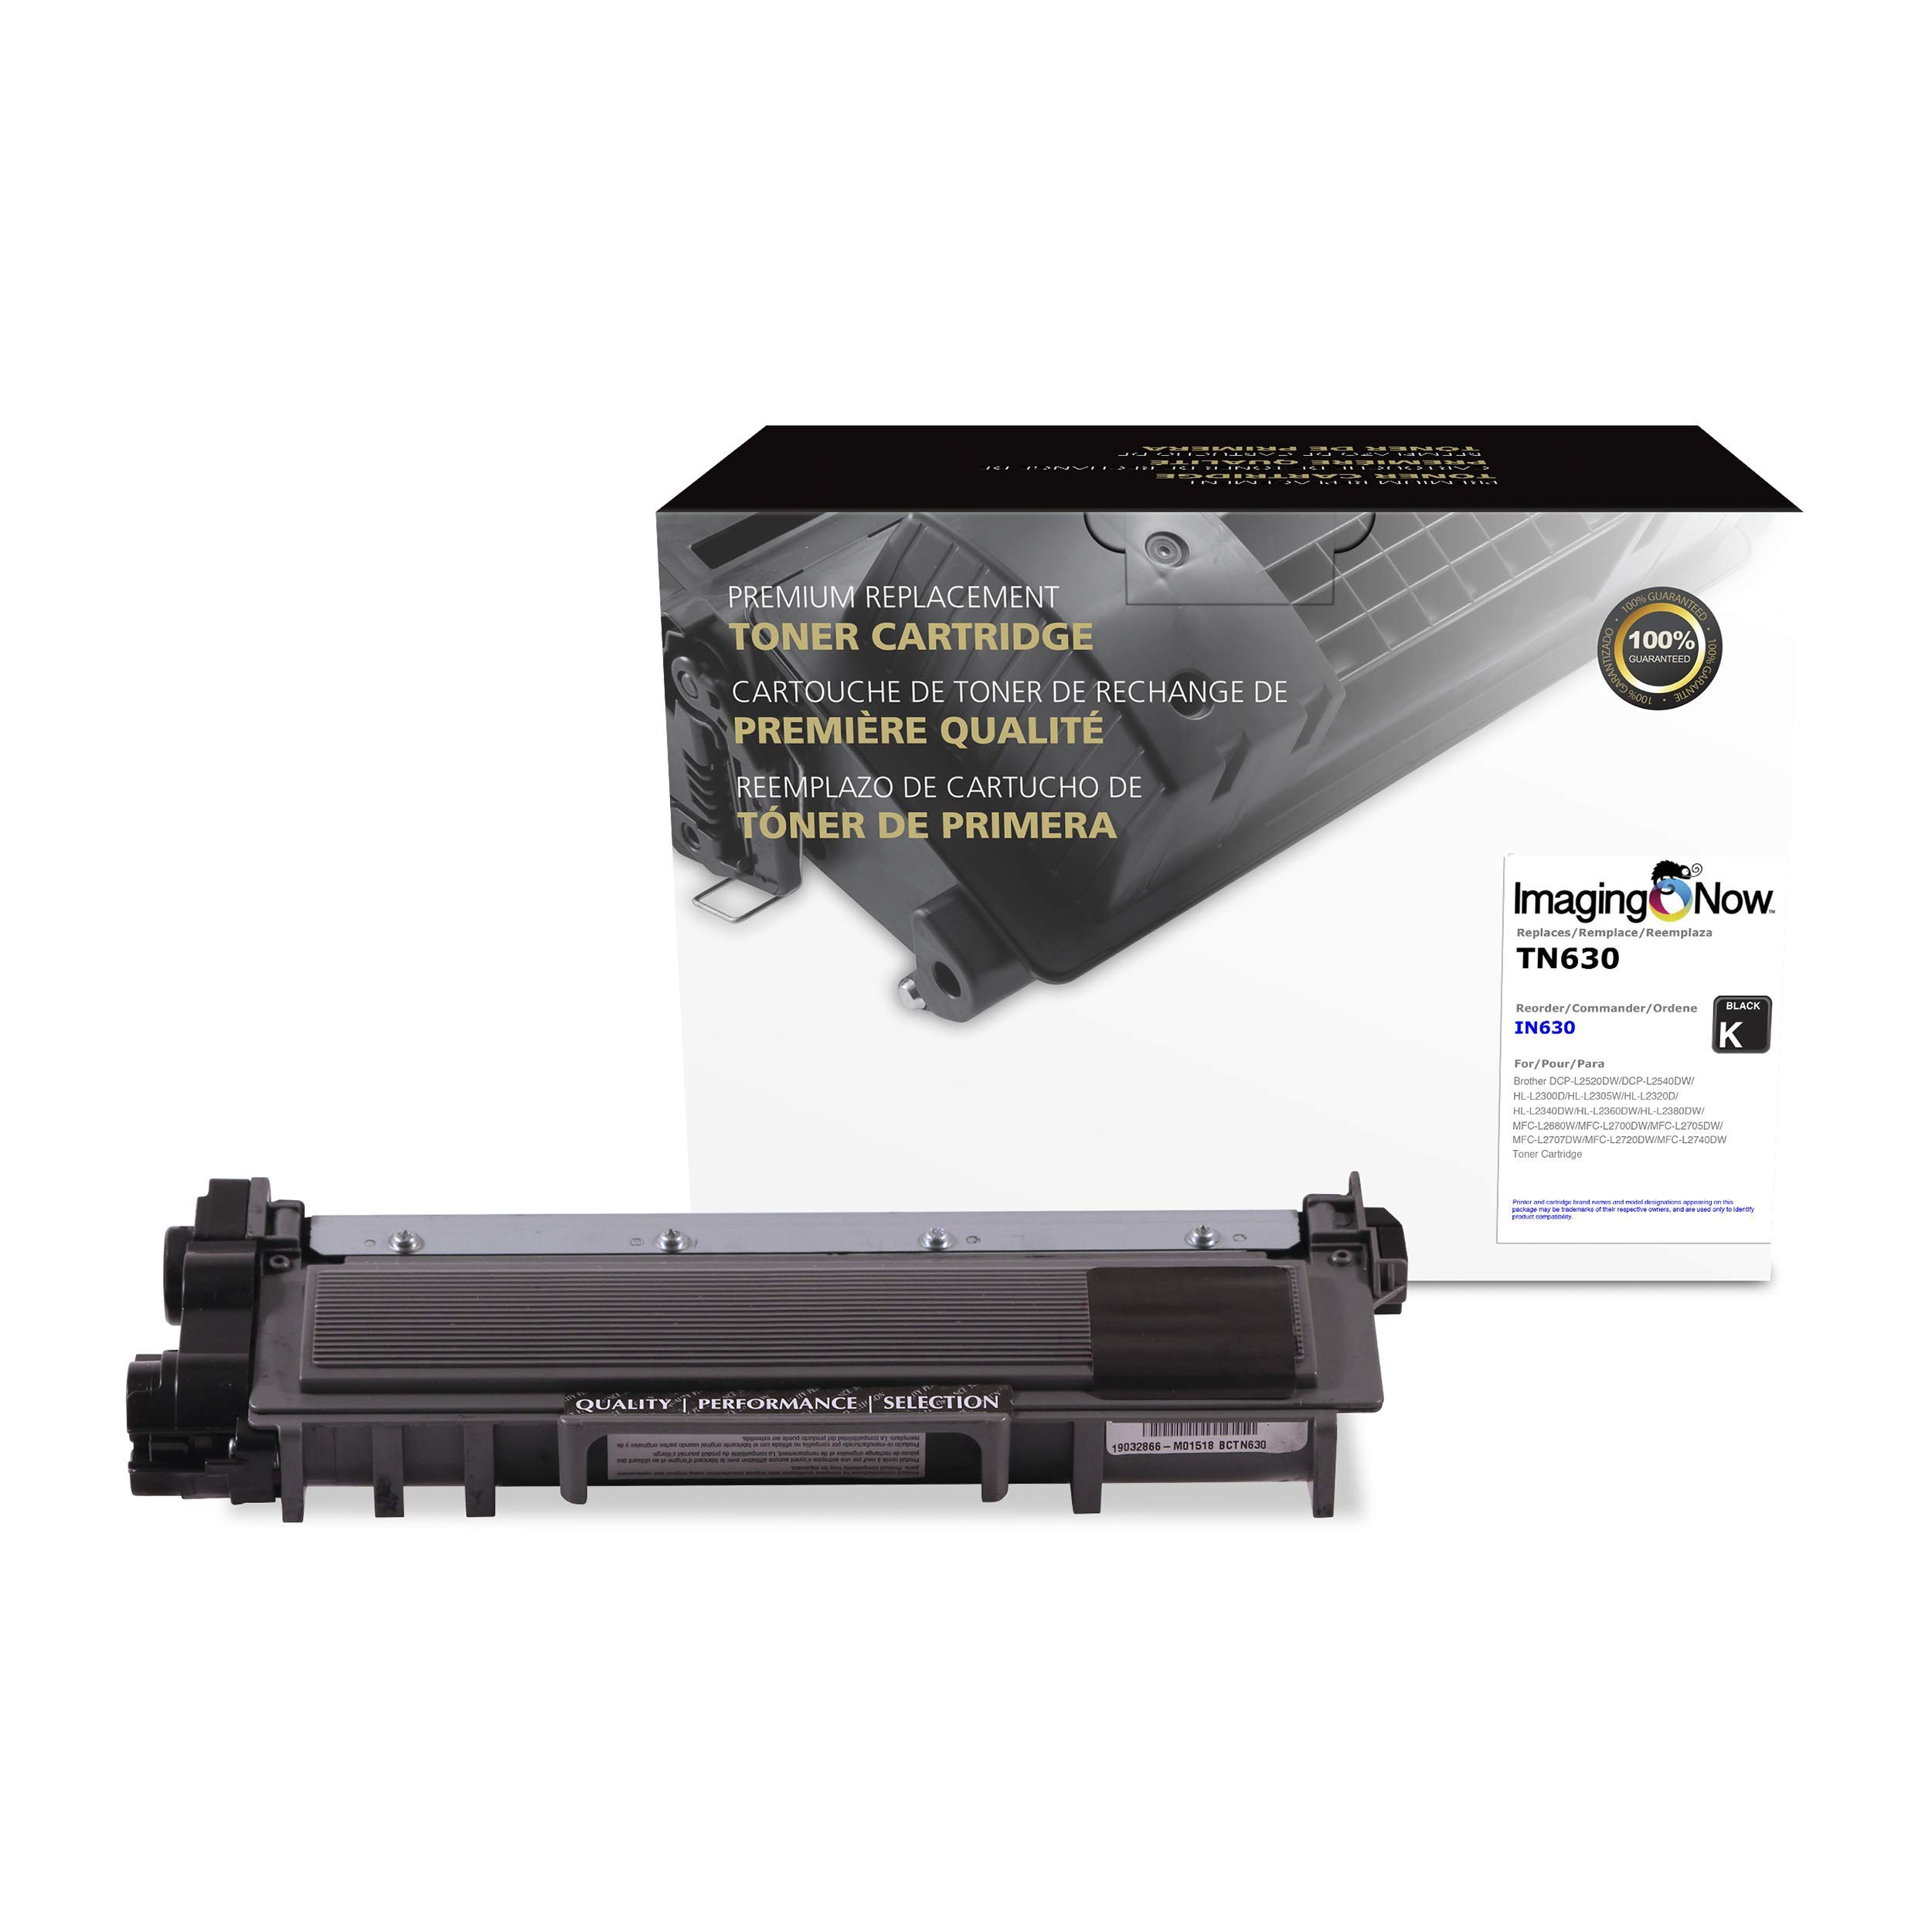 ImagingNow – Eco-Friendly OEM Compatible TN-630 Premium Toner Cartridge Replacement for Brother Printers